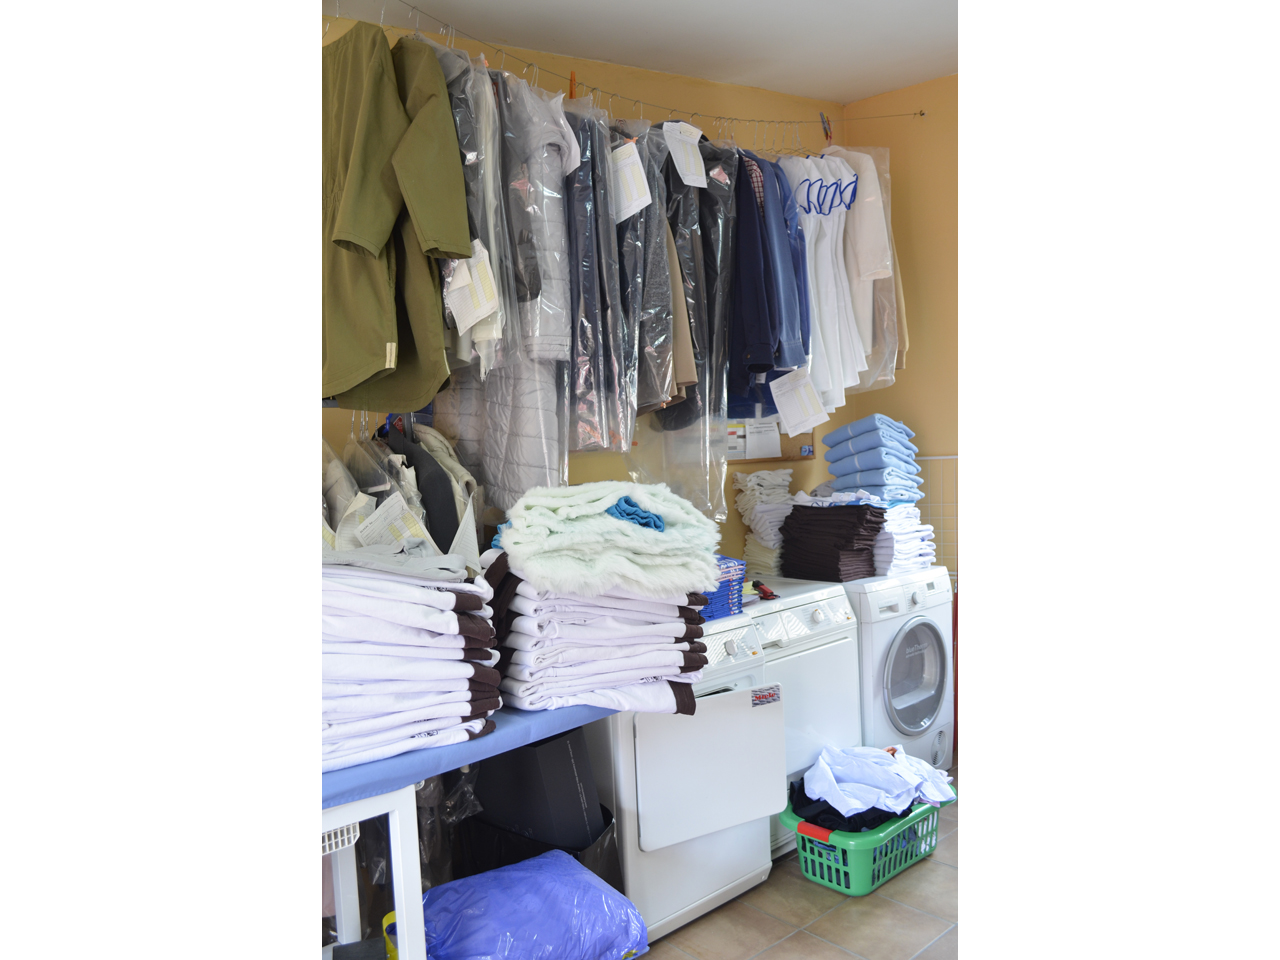 GLANC WASH - DRY CLEANING AND LAUNDRY Laundries Beograd